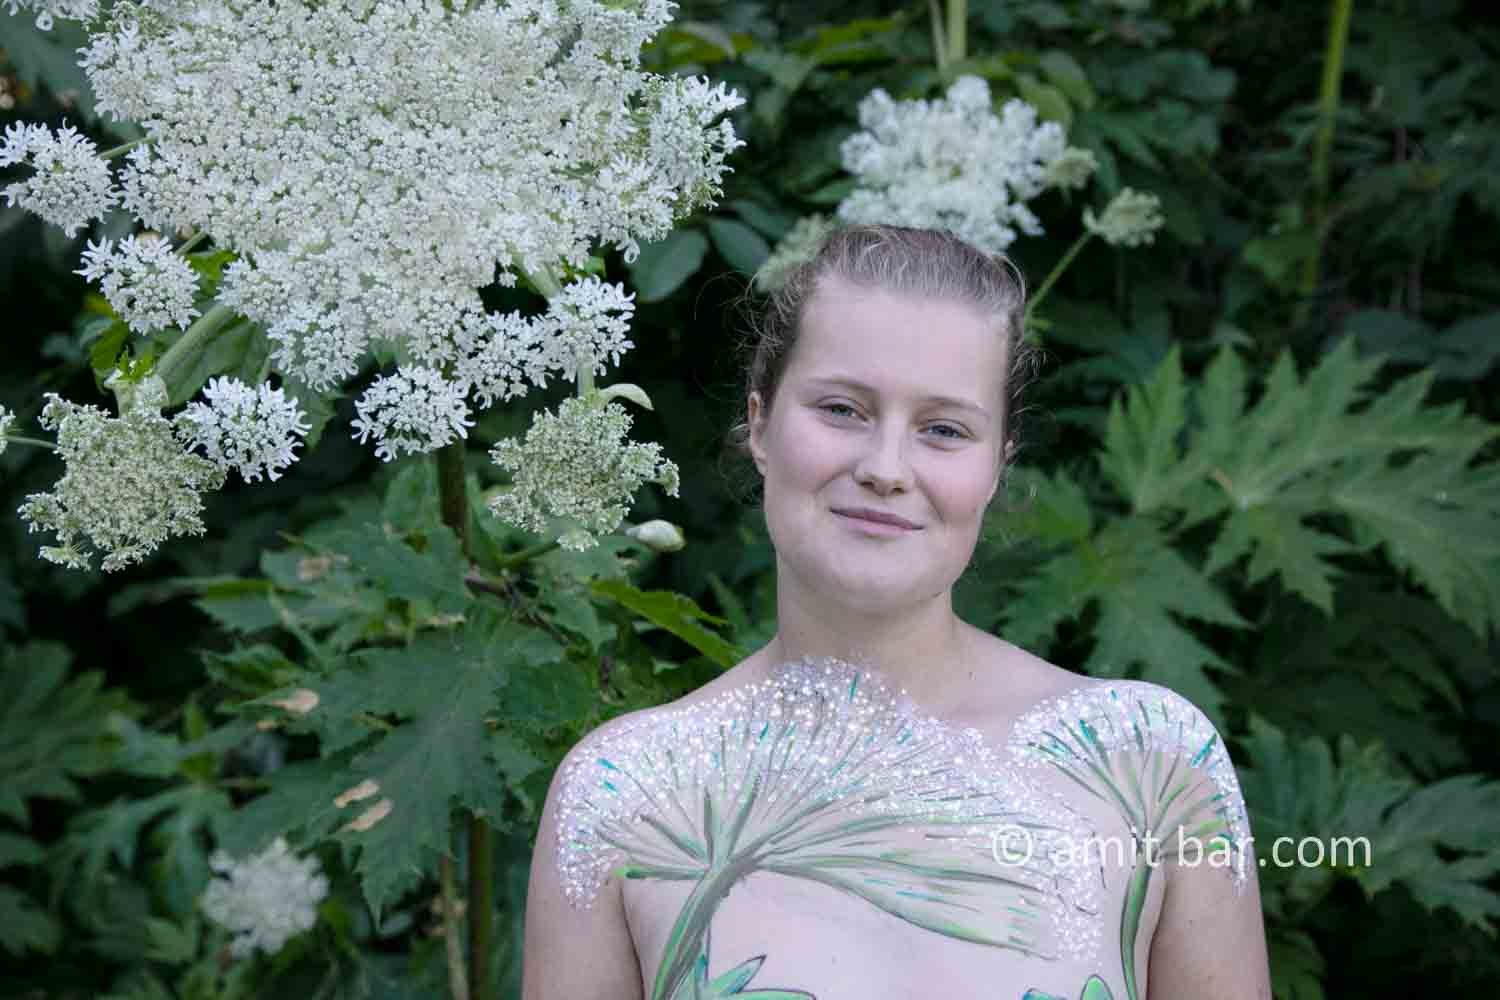 Hogweed plant portrait I: A Portrait of Shelly, who is walking along the beautiful Giant Hogweed plant